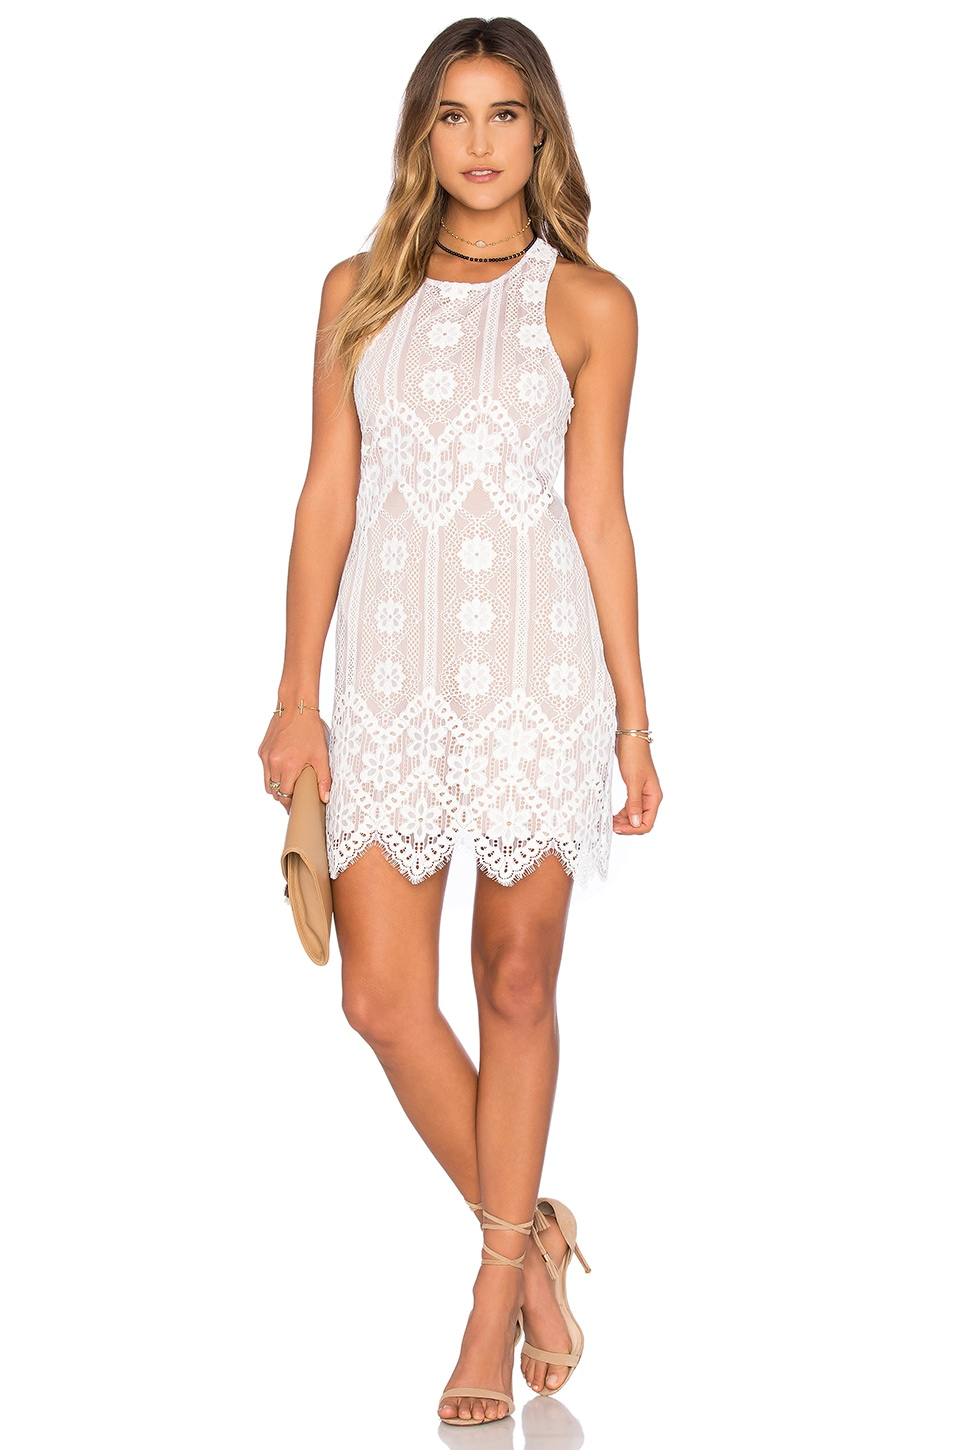 For Love & Lemons x Revolve Dress in White & Nude